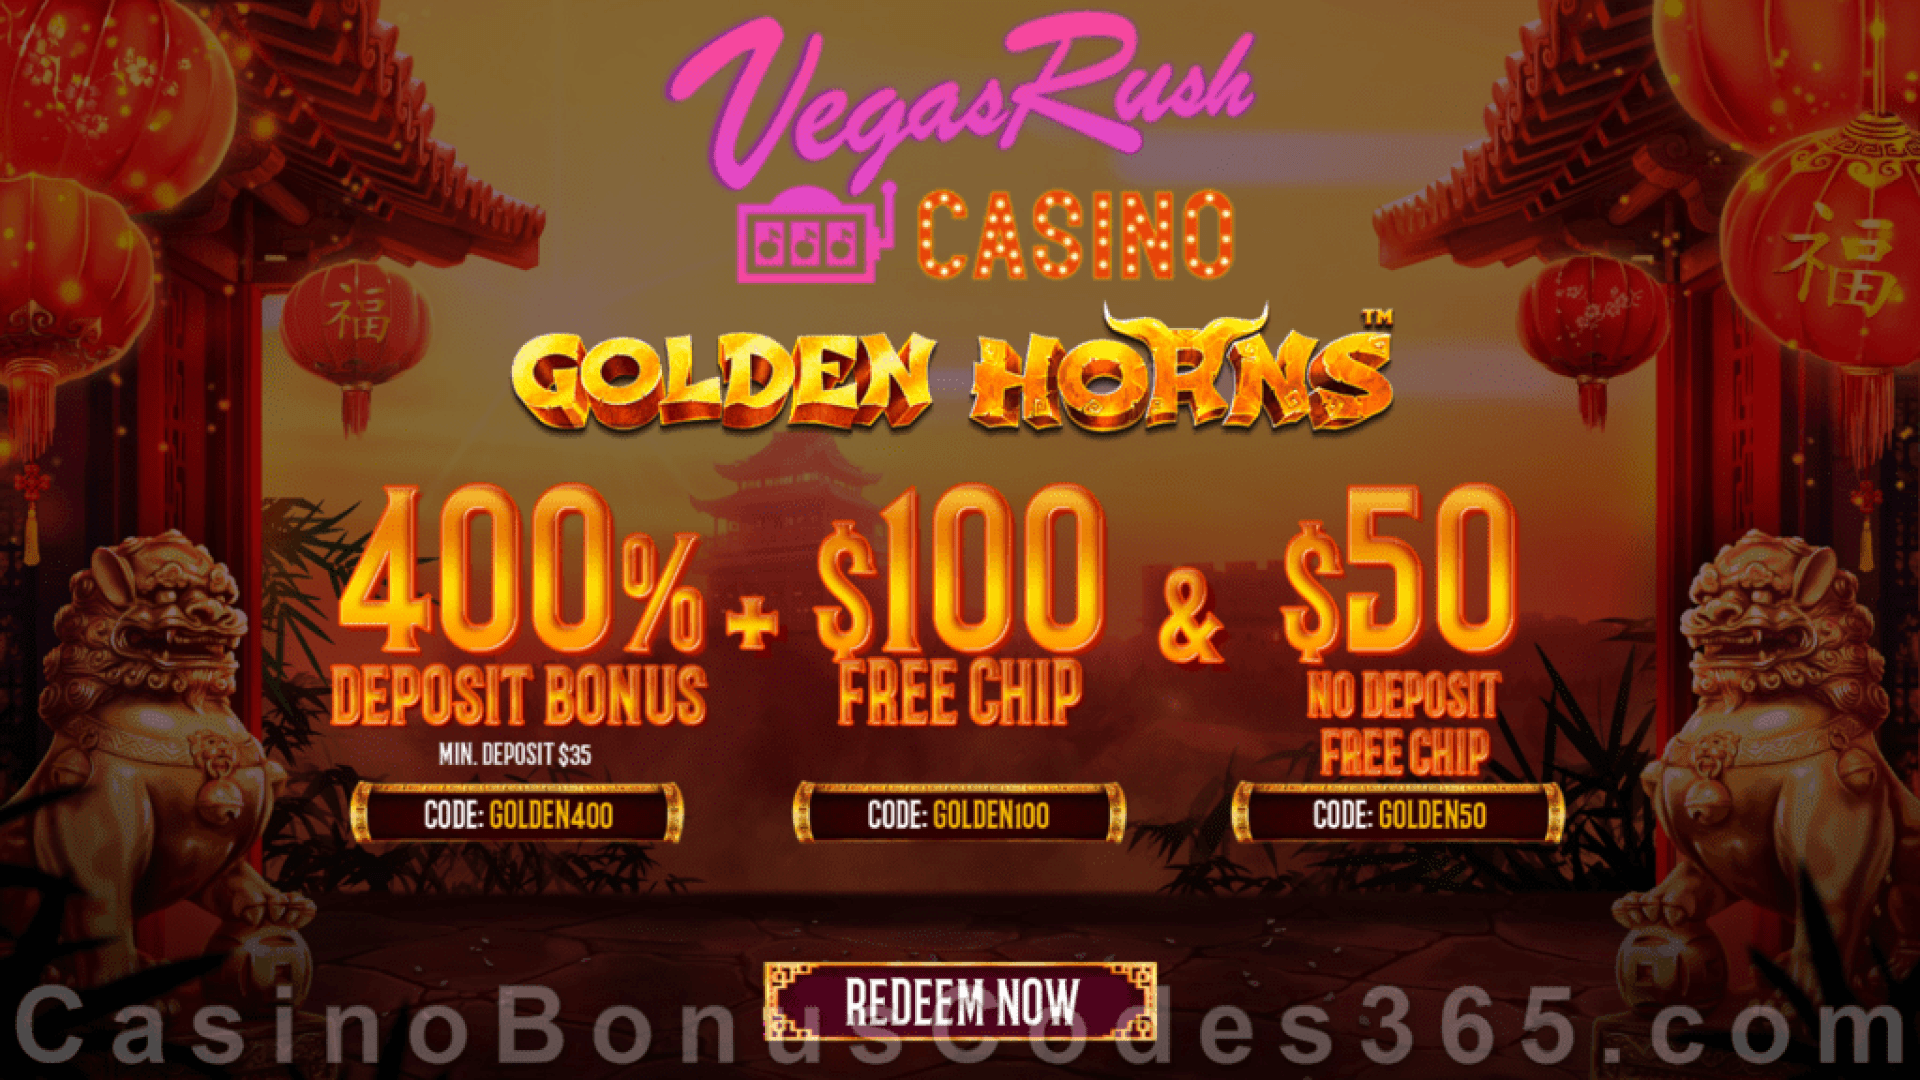 Vegas Rush Casino $50 No Deposit FREE Chip and 400% Match plus $100 FREE Chip Golden Horns Super Deal